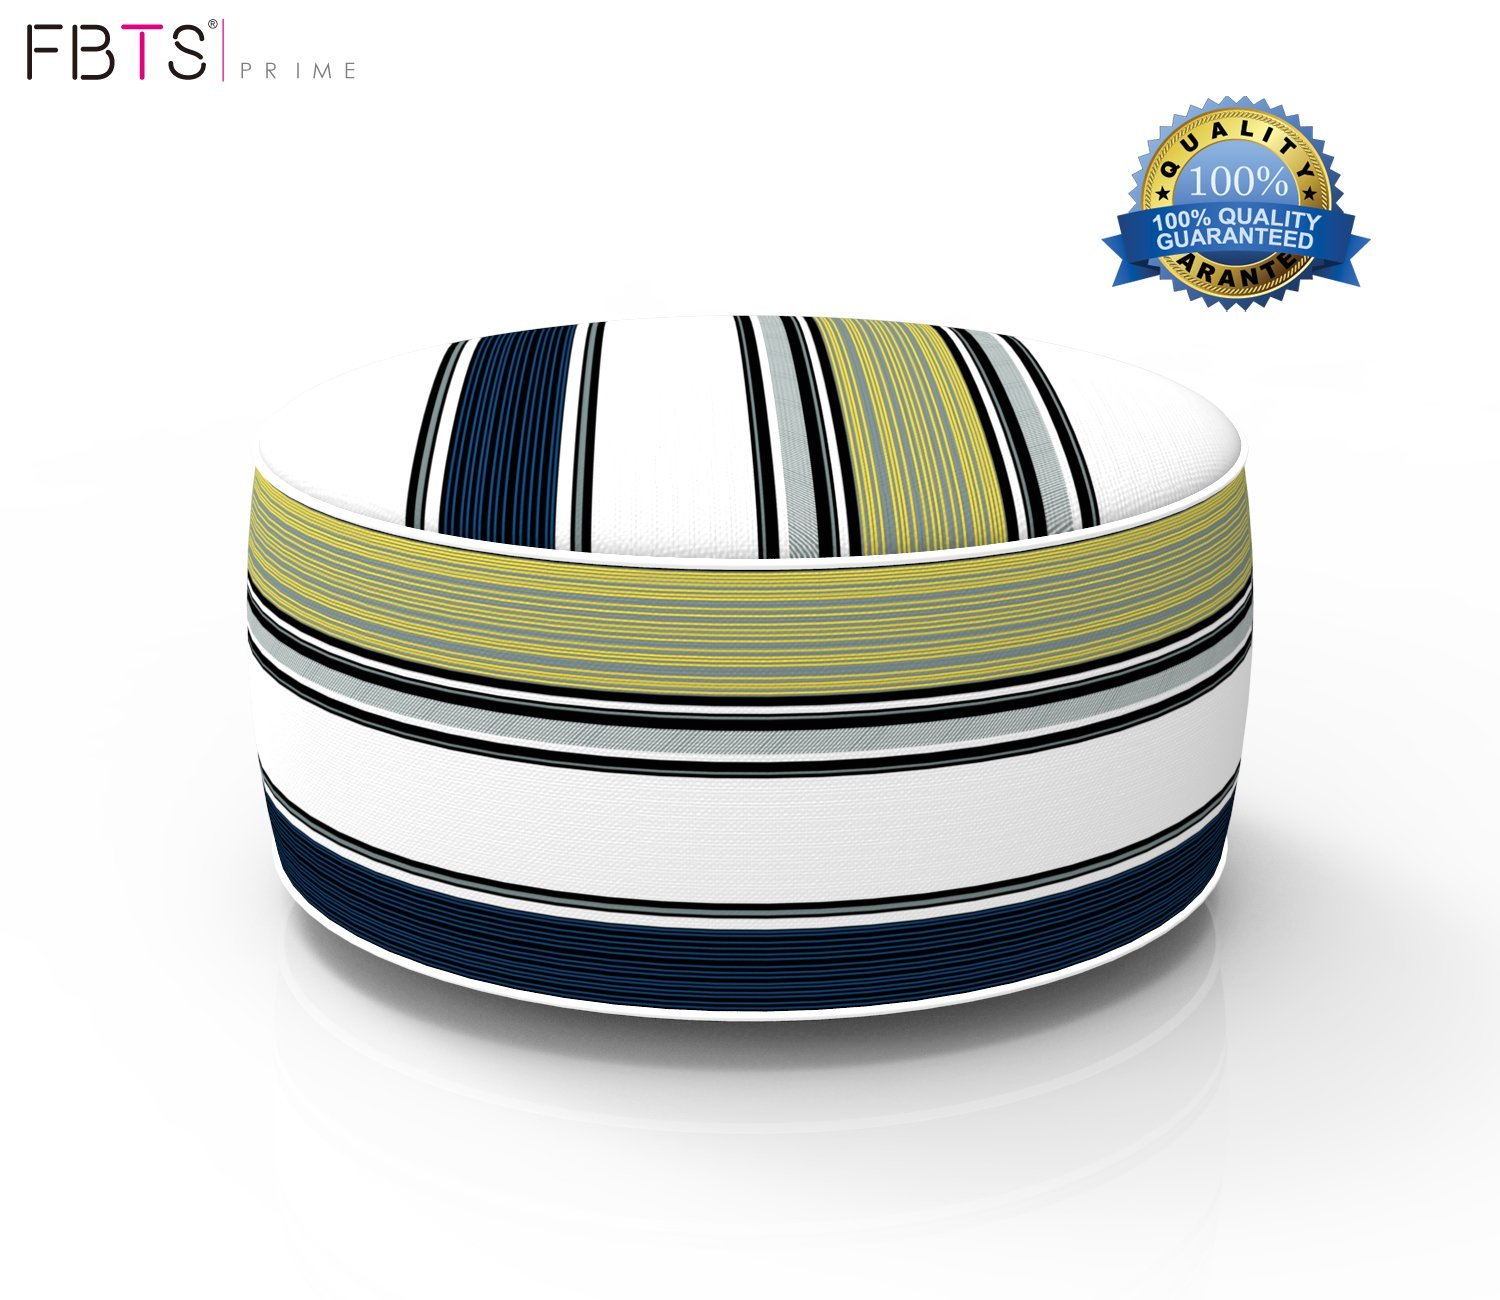 FBTS Prime Outdoor Inflatable Ottoman Navy and Yellow Stripe Round Patio Foot Stools and Ottomans Suitable for Kids and Adults Portable Travel Footstool Used for Outdoor Camping Home Yoga Foot Rest by FBTS Prime